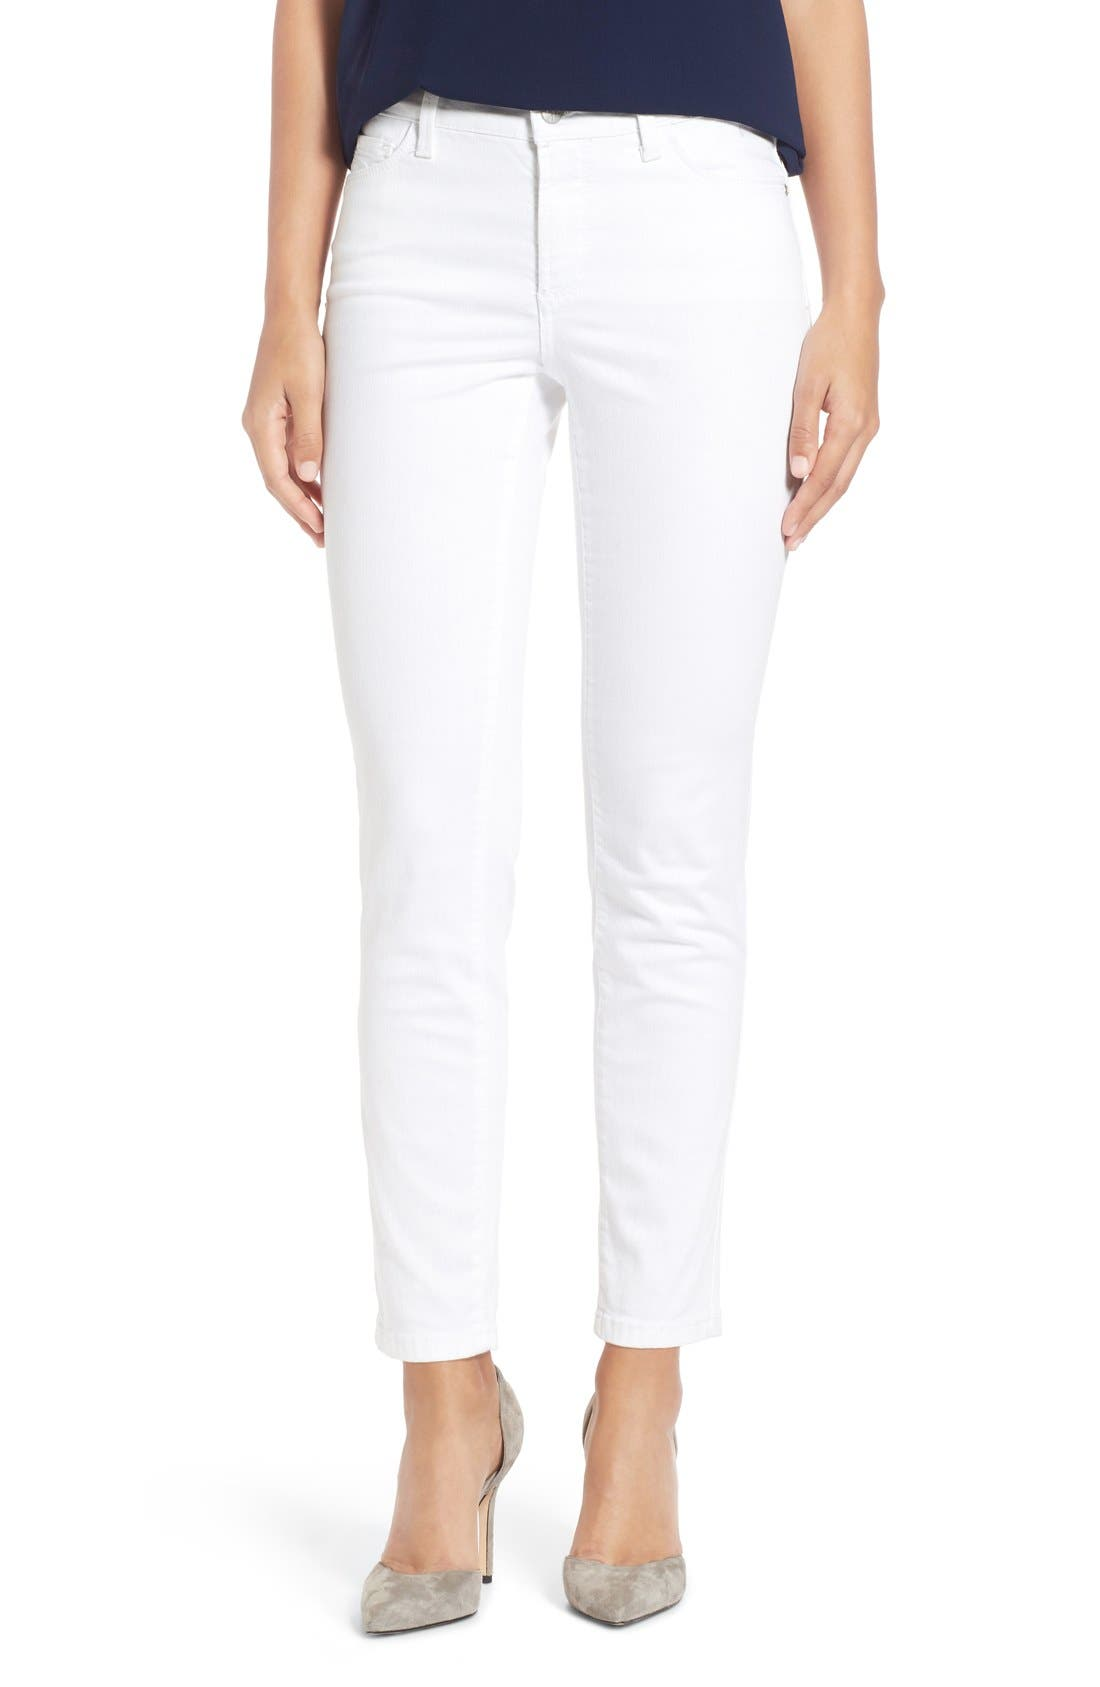 Alternate Image 1 Selected - NYDJ Alina Colored Stretch Ankle Skinny Jeans (Regular & Petite)